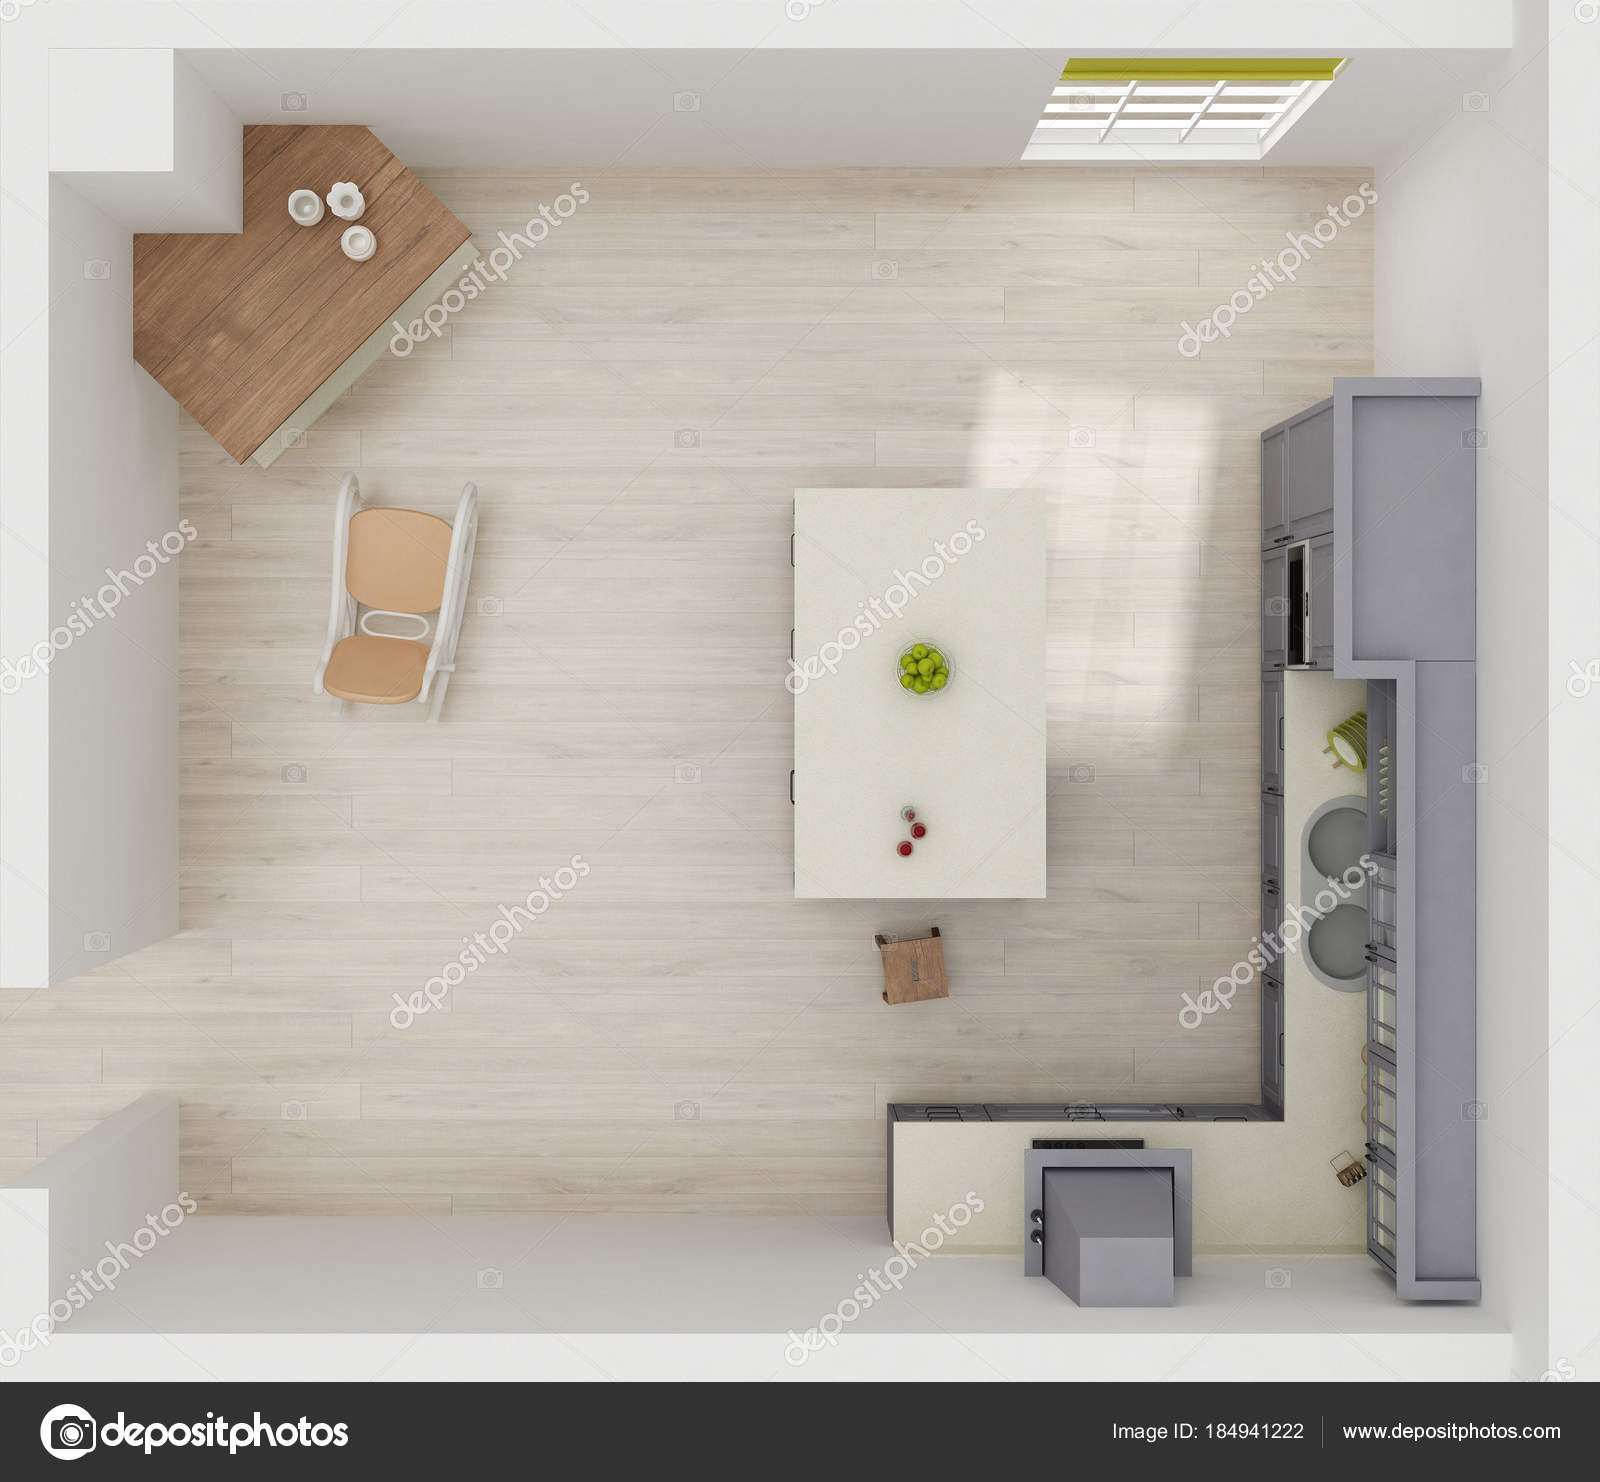 Kitchen Interior Rendering Top View Stock Photo C Ramilaliyev79